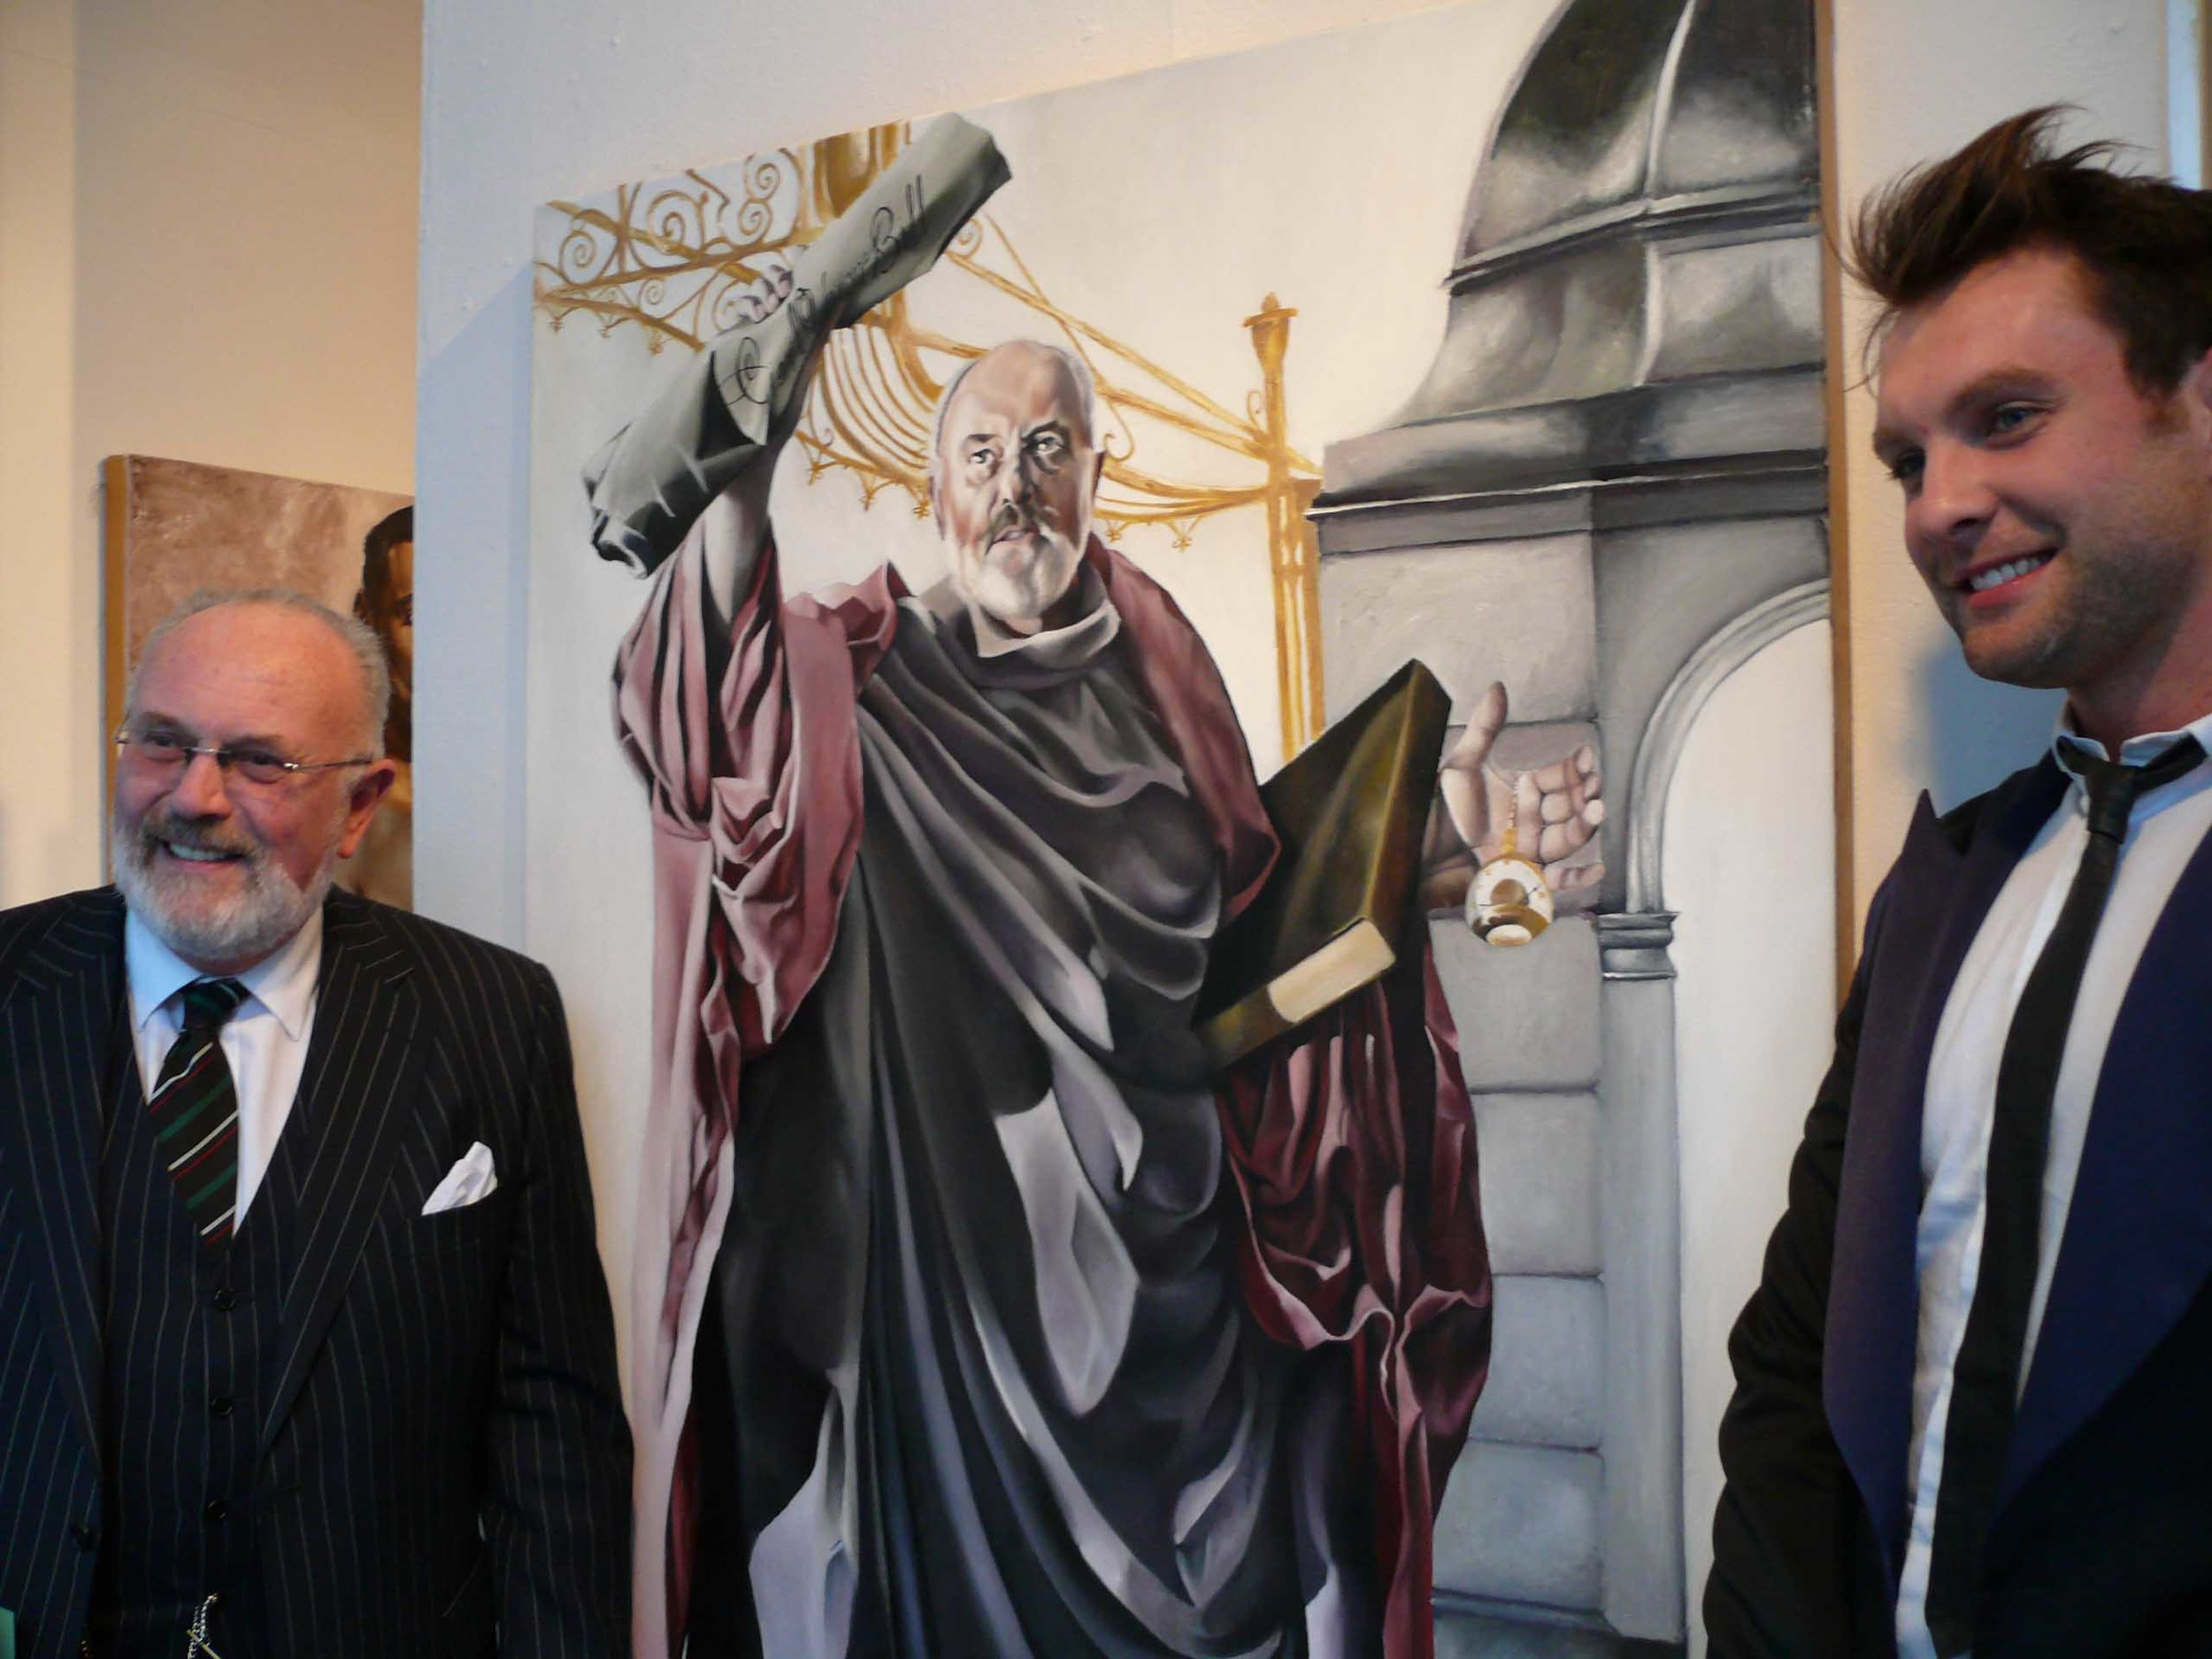 #DavidNorris next to my adiptation of him as 'Saint Peter'. This is one of thee proudest moments of my life, EVER!